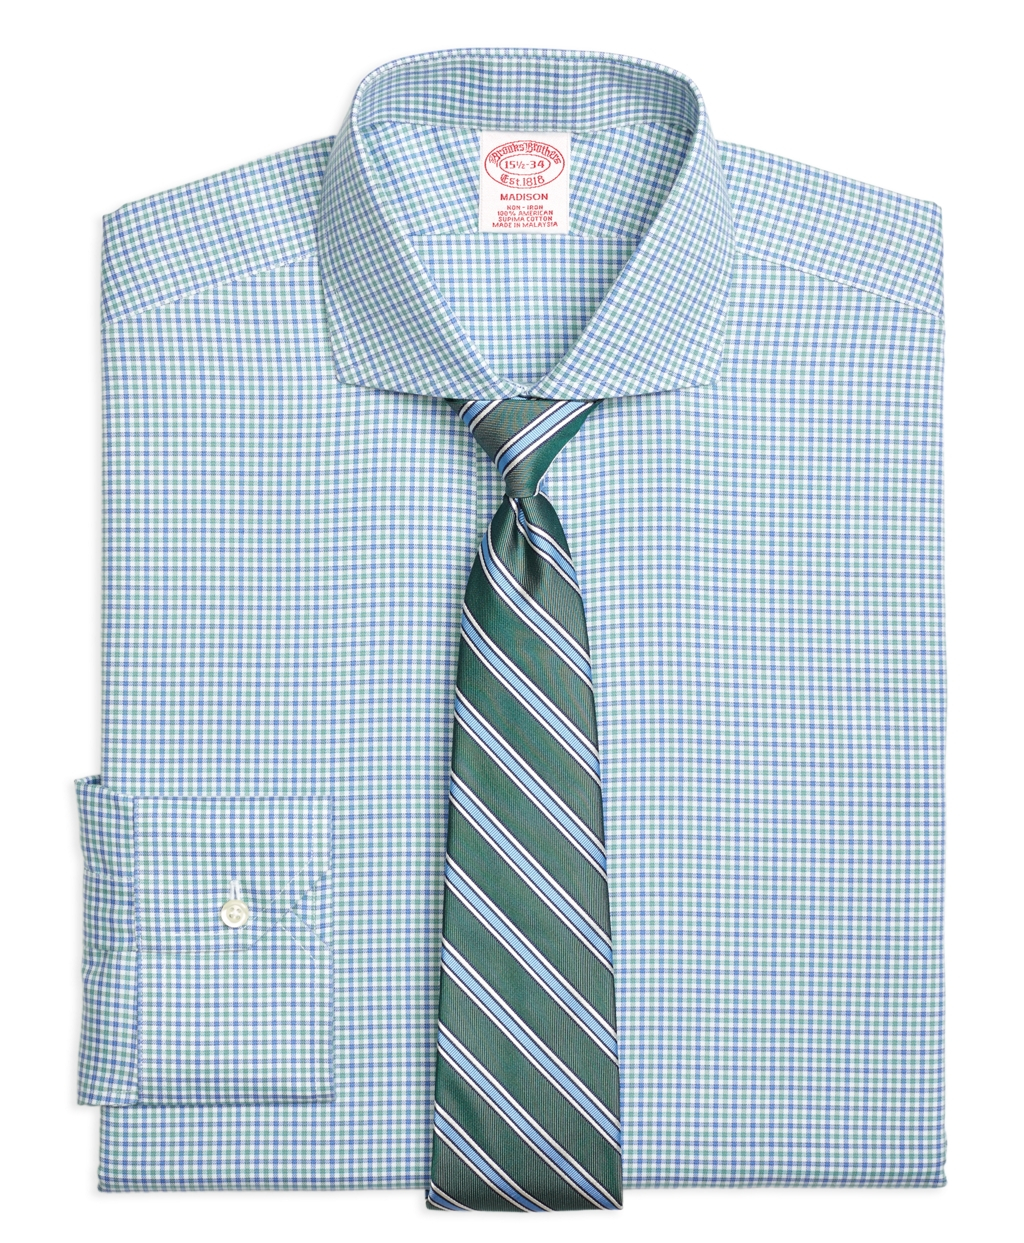 Brooks brothers non iron madison fit micro framed gingham for Brooks brothers non iron shirts review